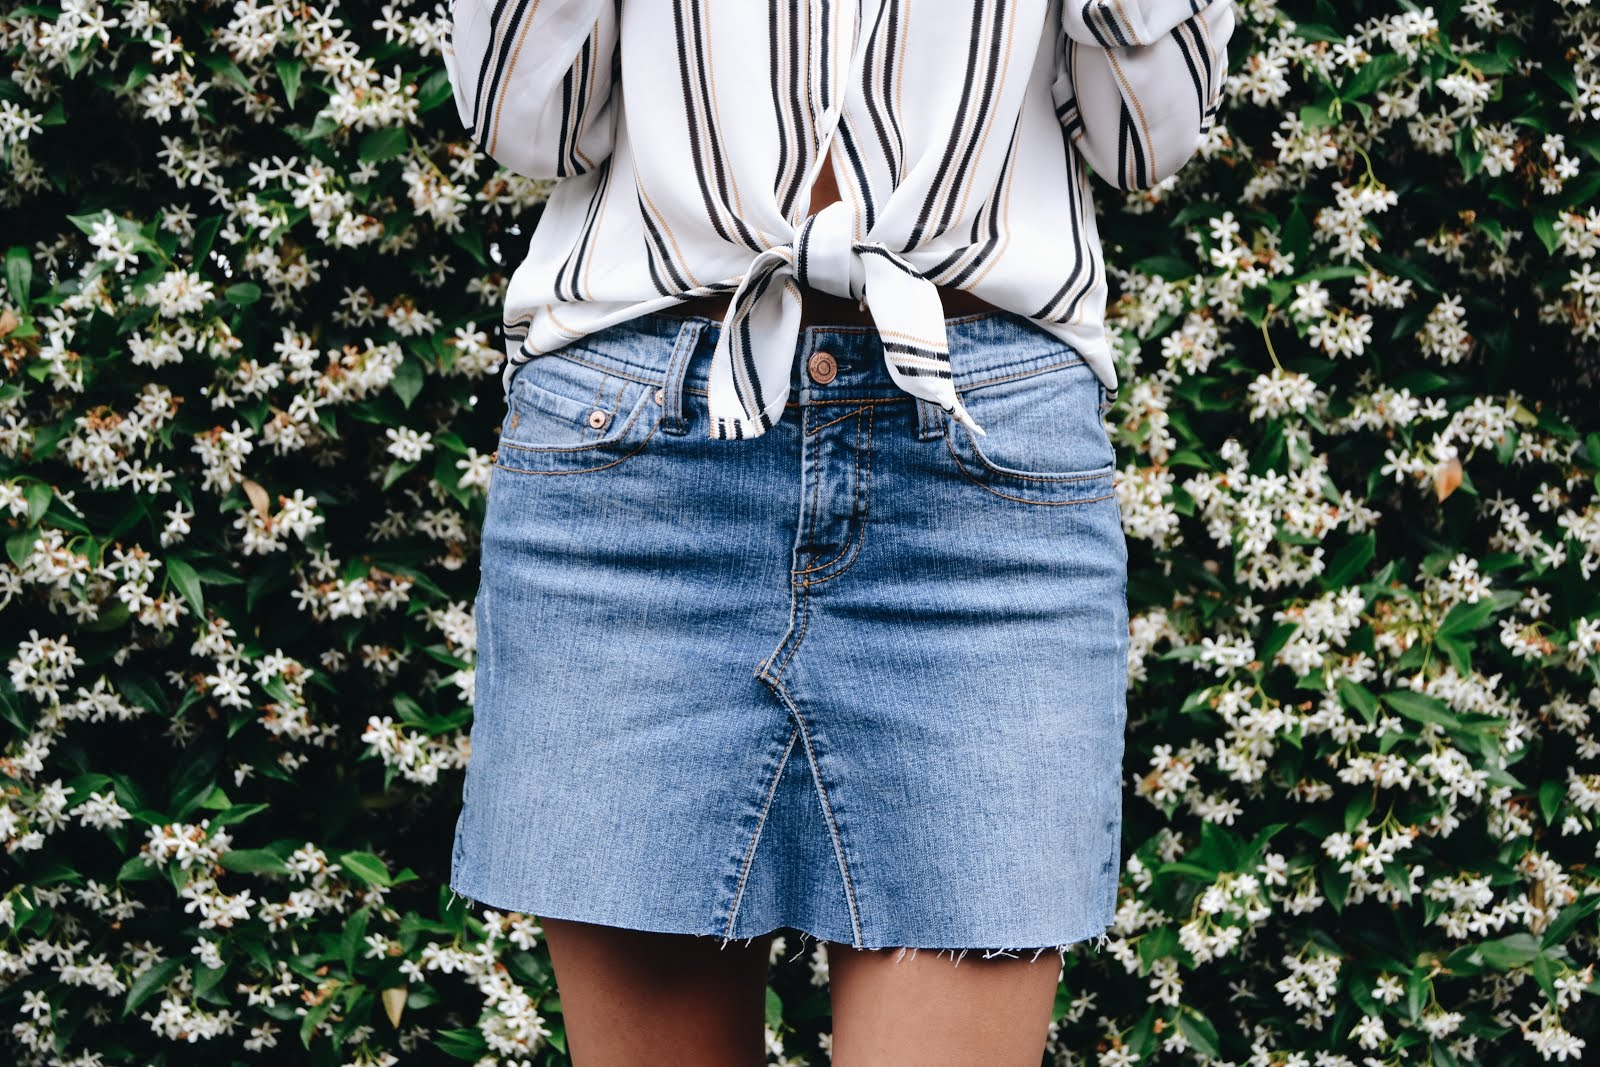 DIY - Old Jeans to Jean Skirt